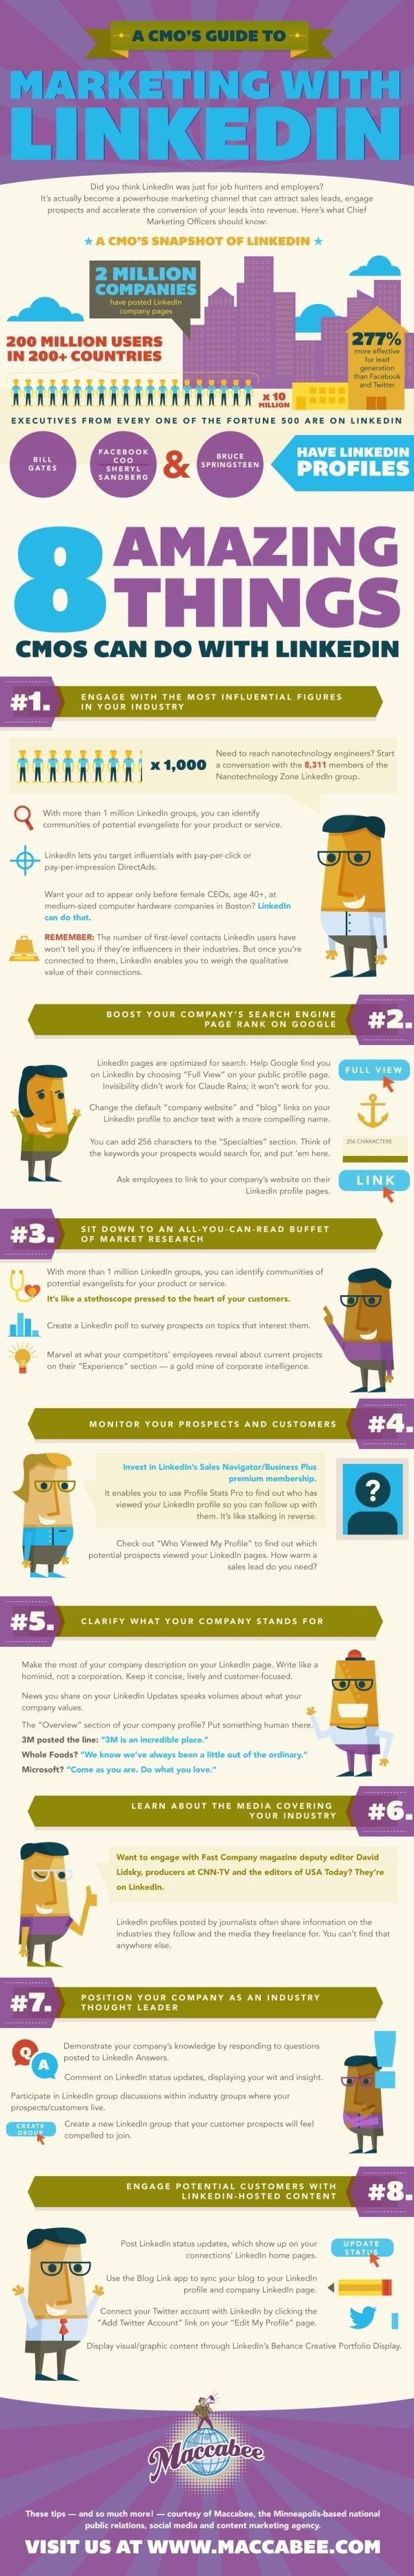 8 Tips for #Marketing Your Business with LinkedIn #socialmedia #infographic